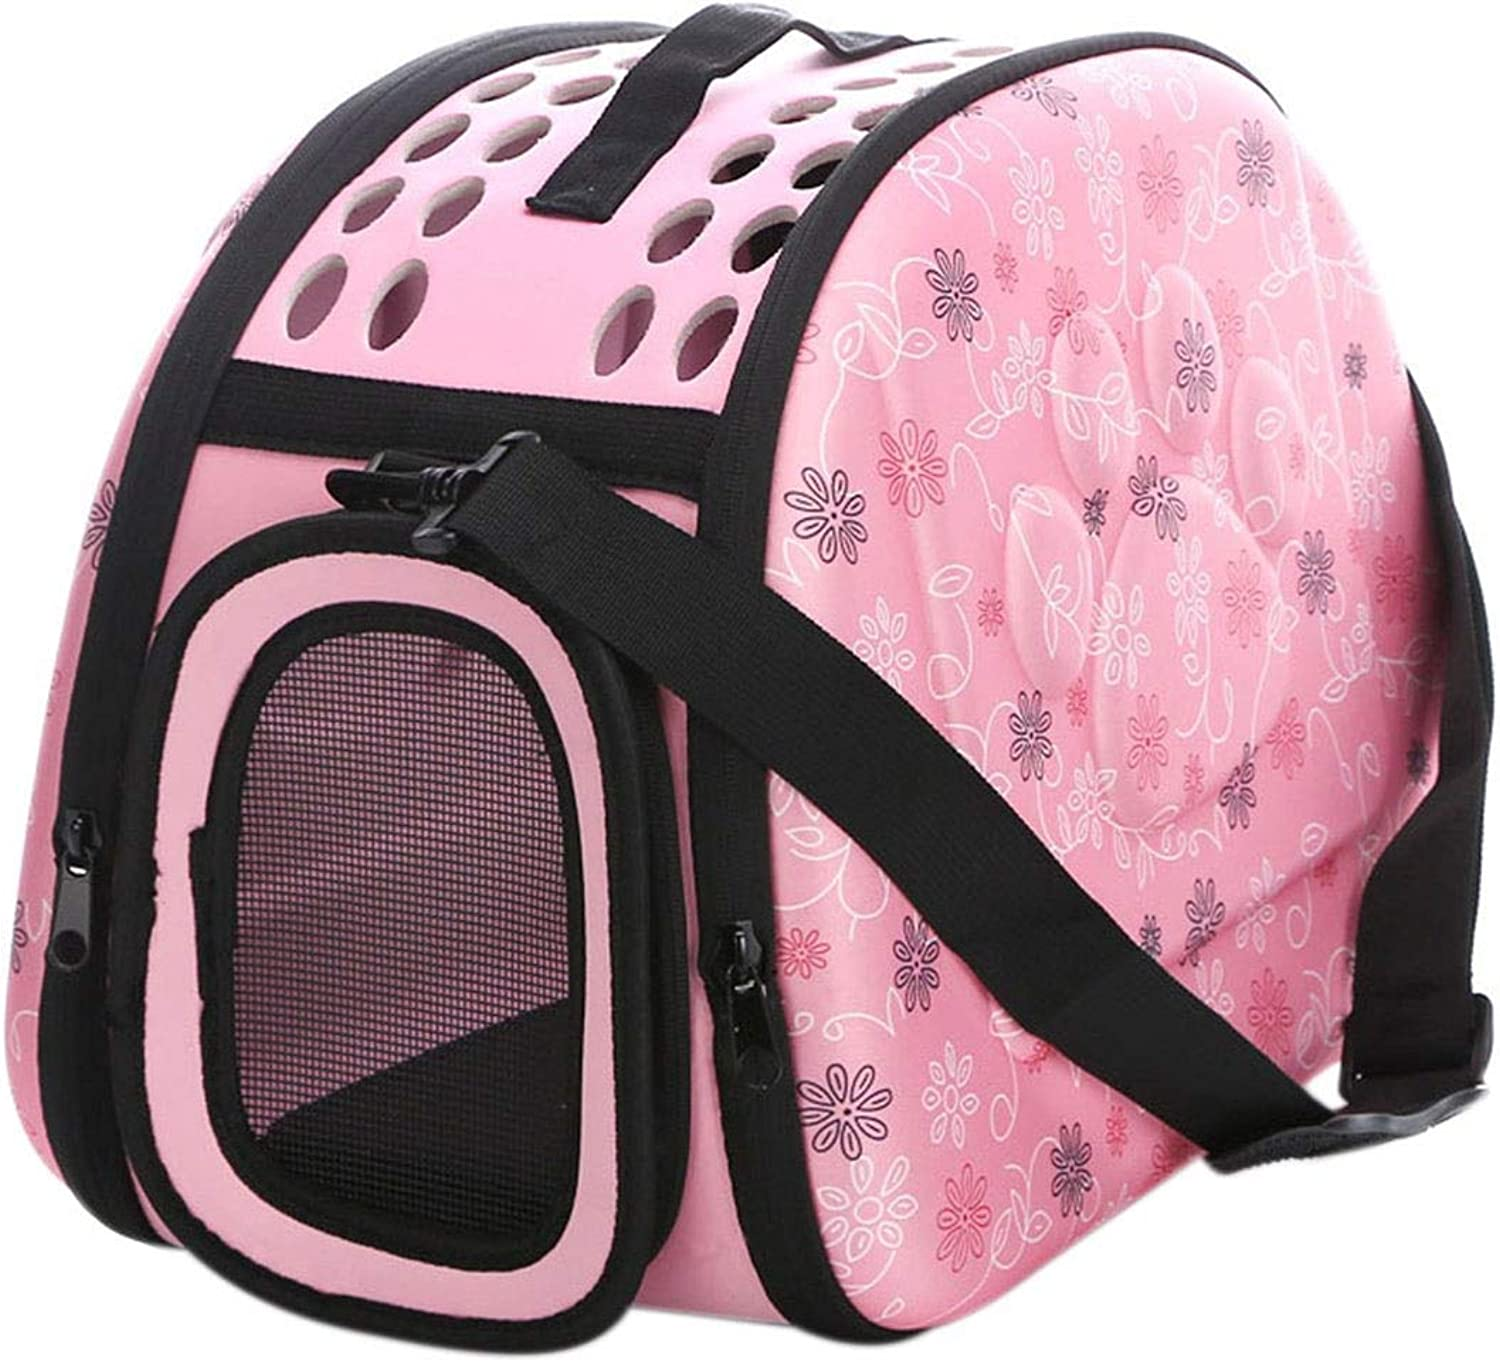 FANQIECHAODAN Breathable Pet Out Carrying Bag Foldable Pet Bag by Pet,Designed for Cats,Dogs,Kittens,PuppiesExtra Spacious Soft Sided Carrier (color   Pink)